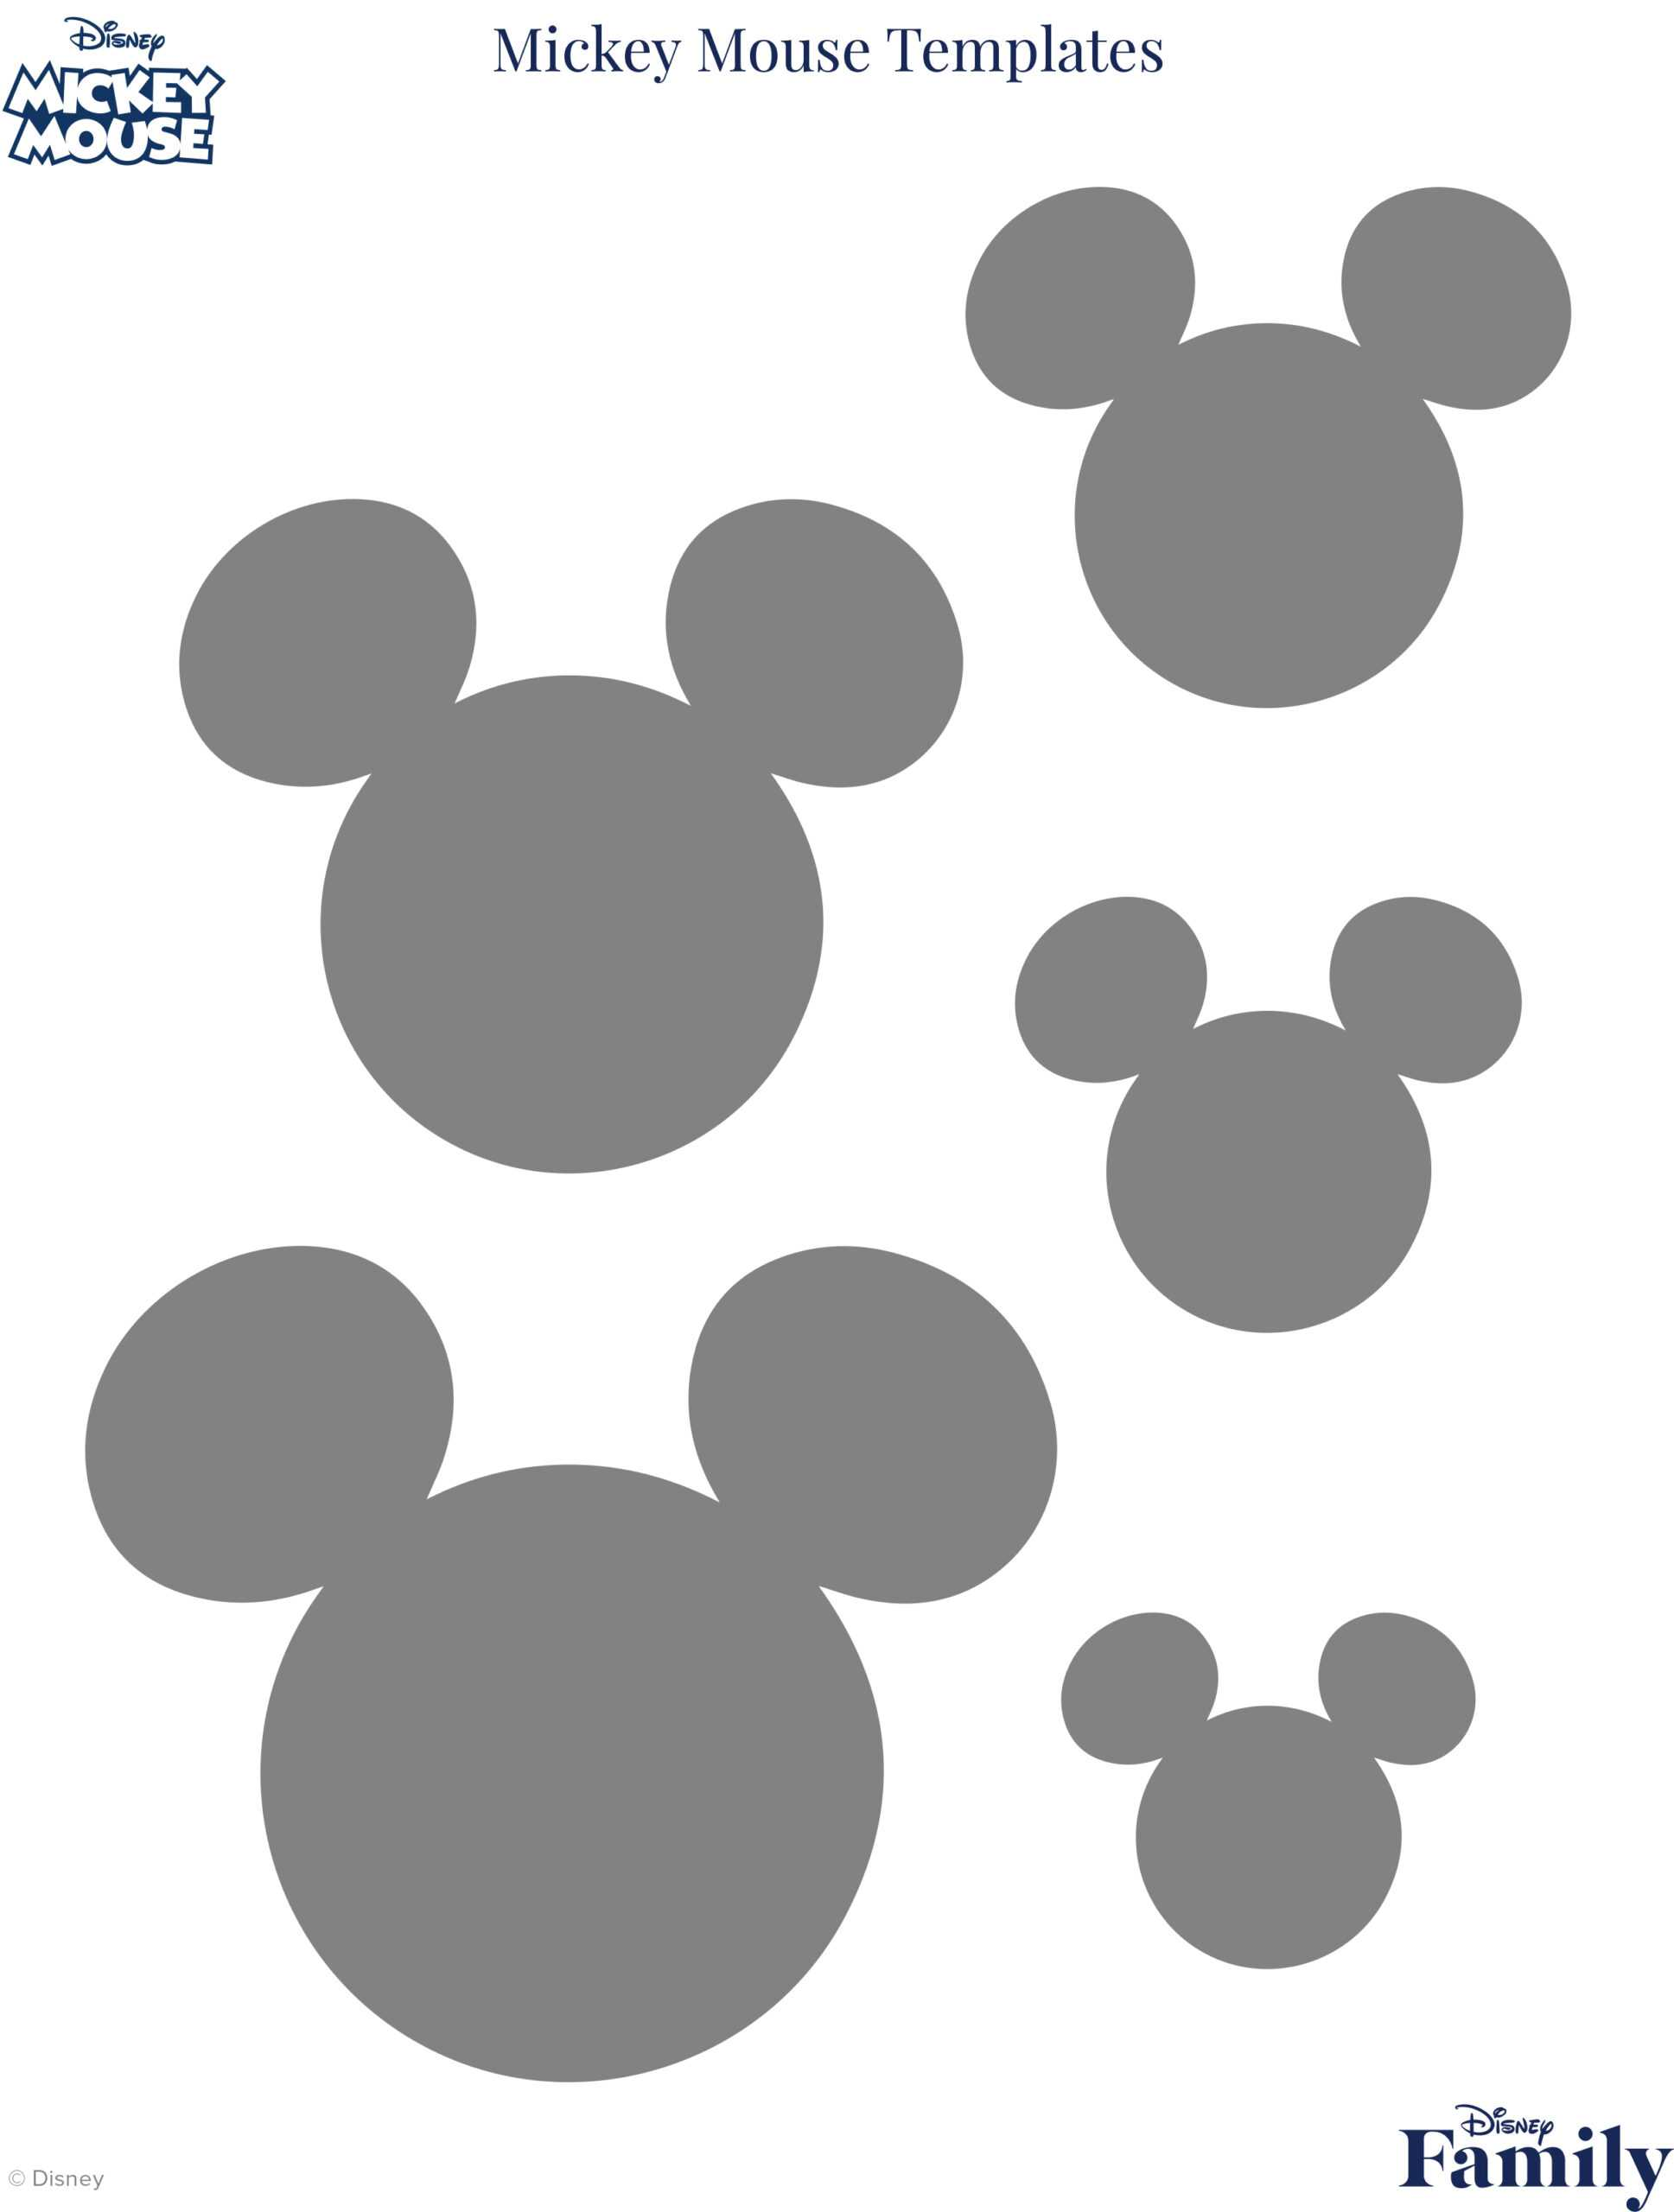 Mickey Mouse Template | Disney Family With Disney Letter Template